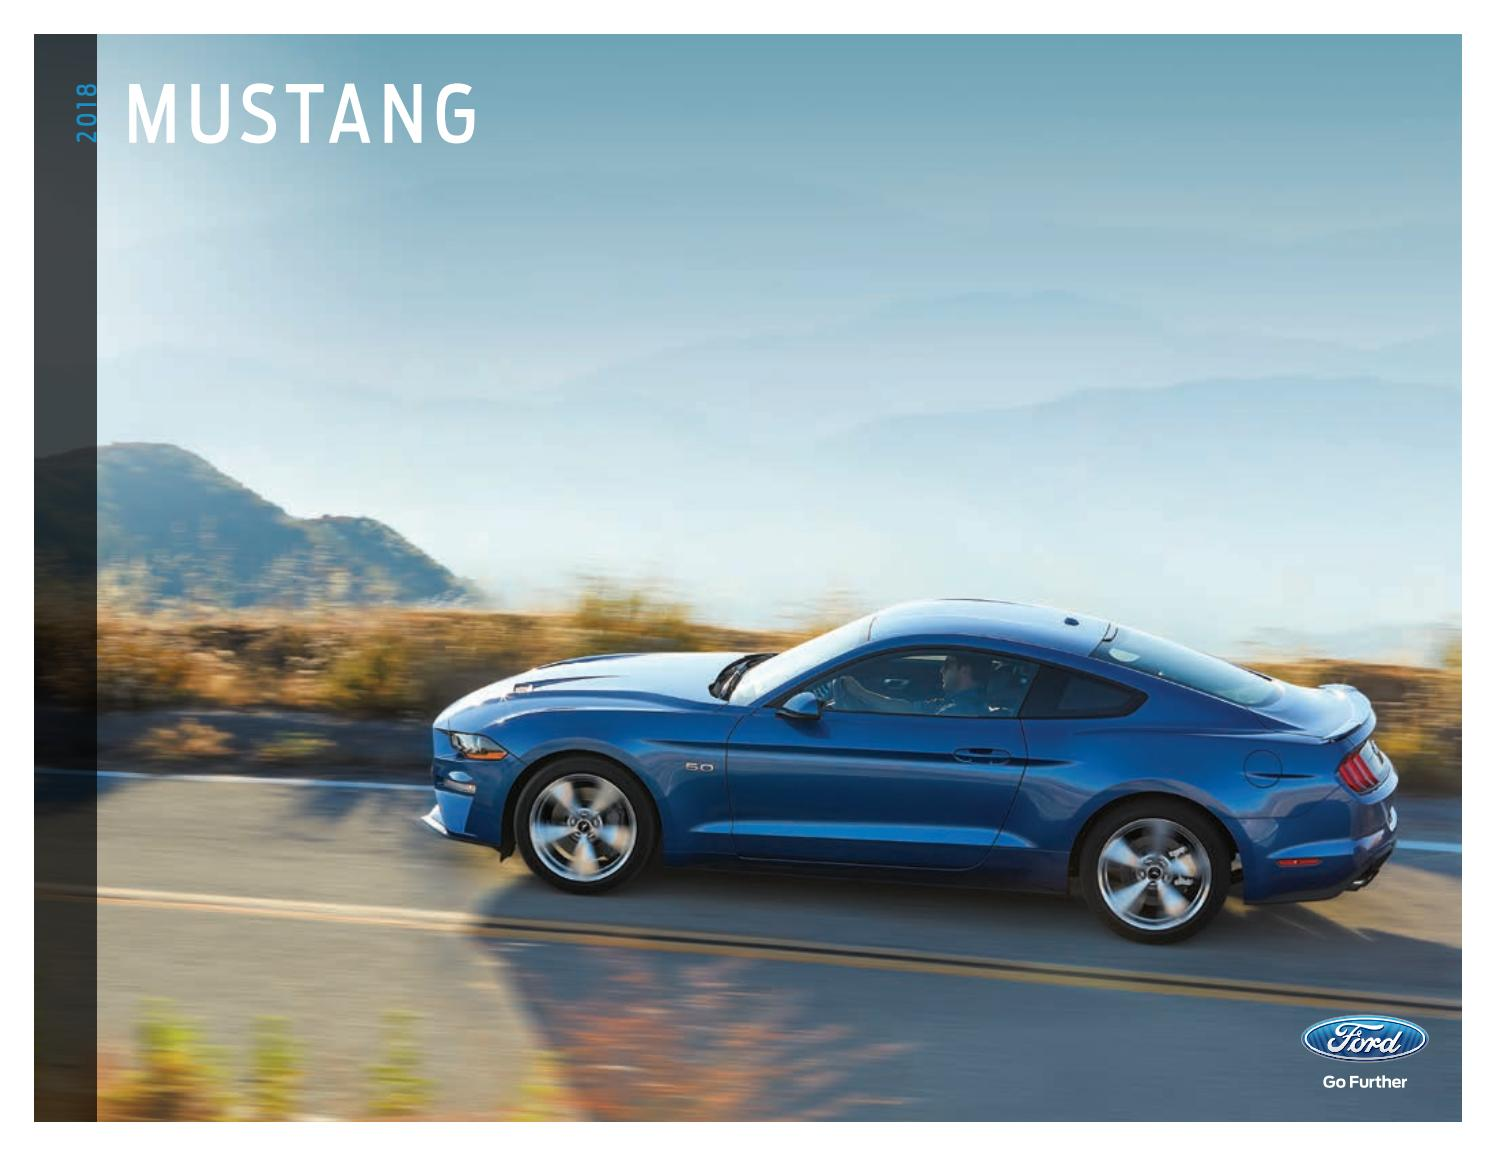 Laminated Aluminum Ford Mustang Auto License Plate